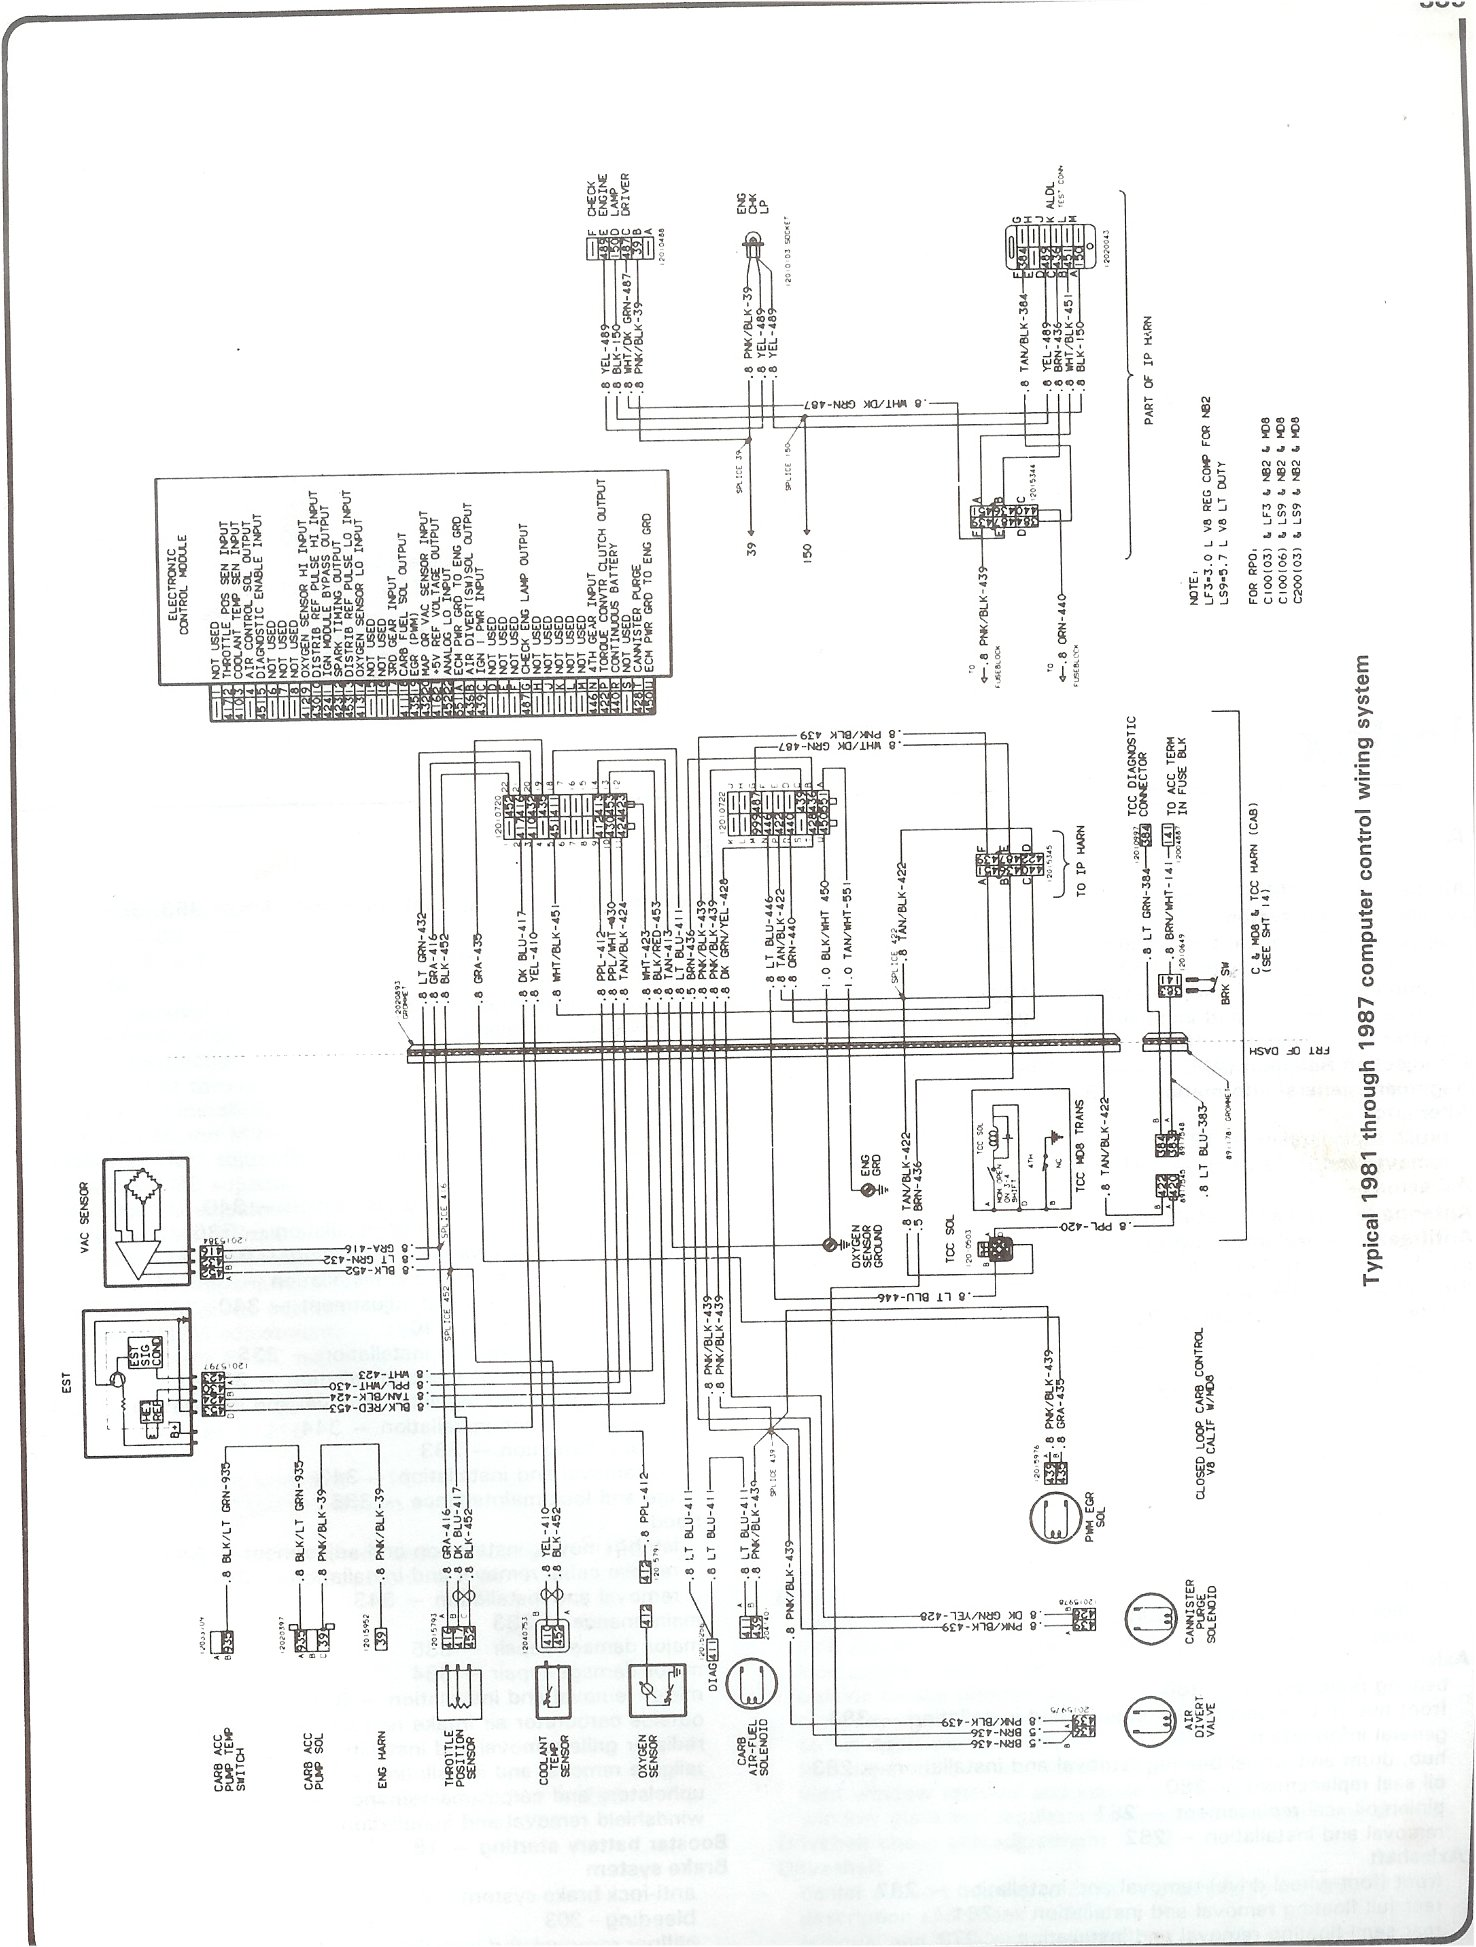 complete 73 87 wiring diagrams rh forum 73 87chevytrucks com 1977 chevy truck ignition wiring diagram 1977 chevy truck alternator wiring diagram